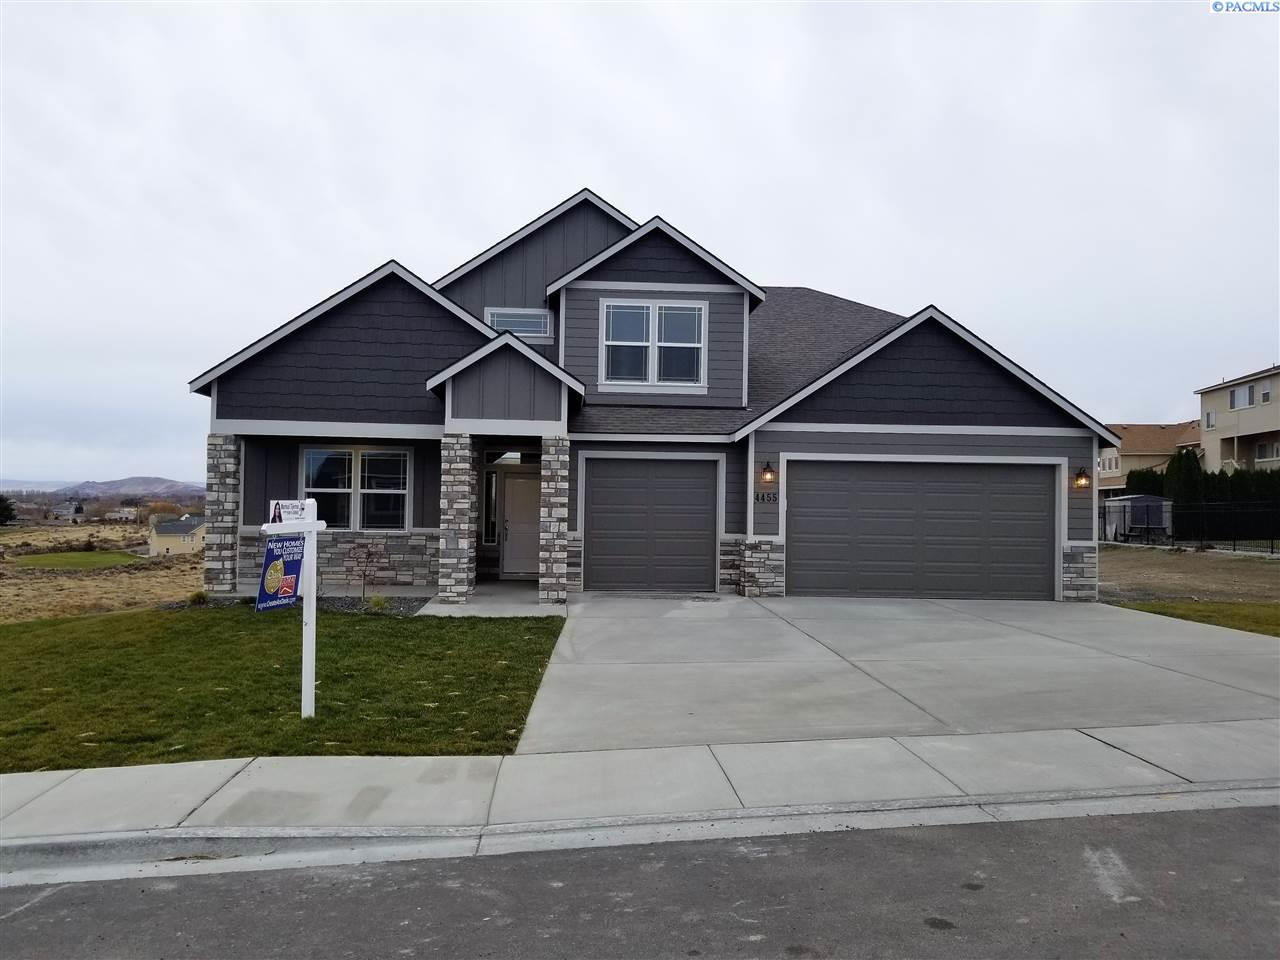 4455 Queen St, West Richland, WA 99353